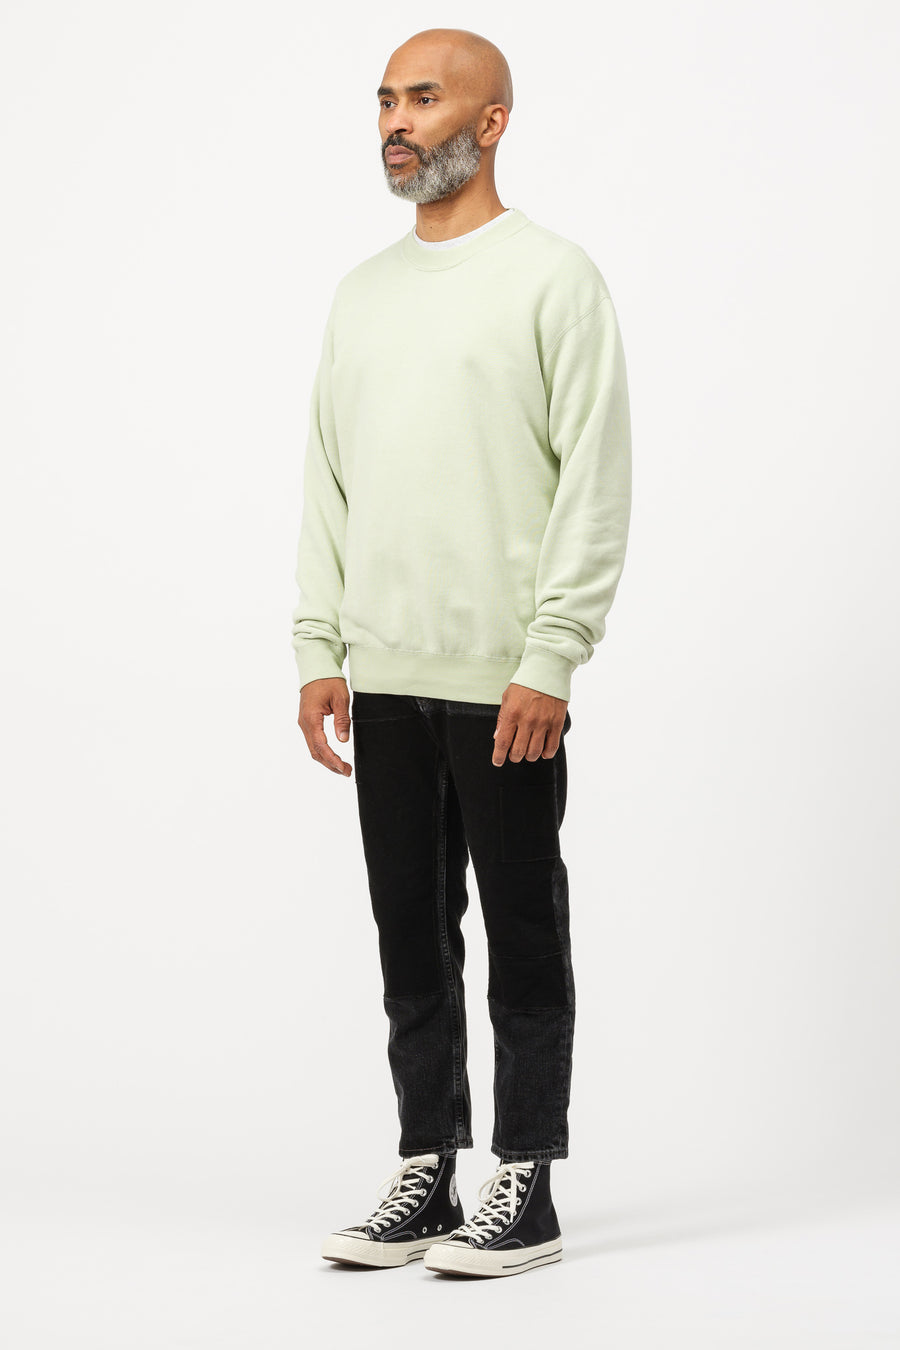 John Elliott Vintage Fleece Crewneck in Mint Green - Notre